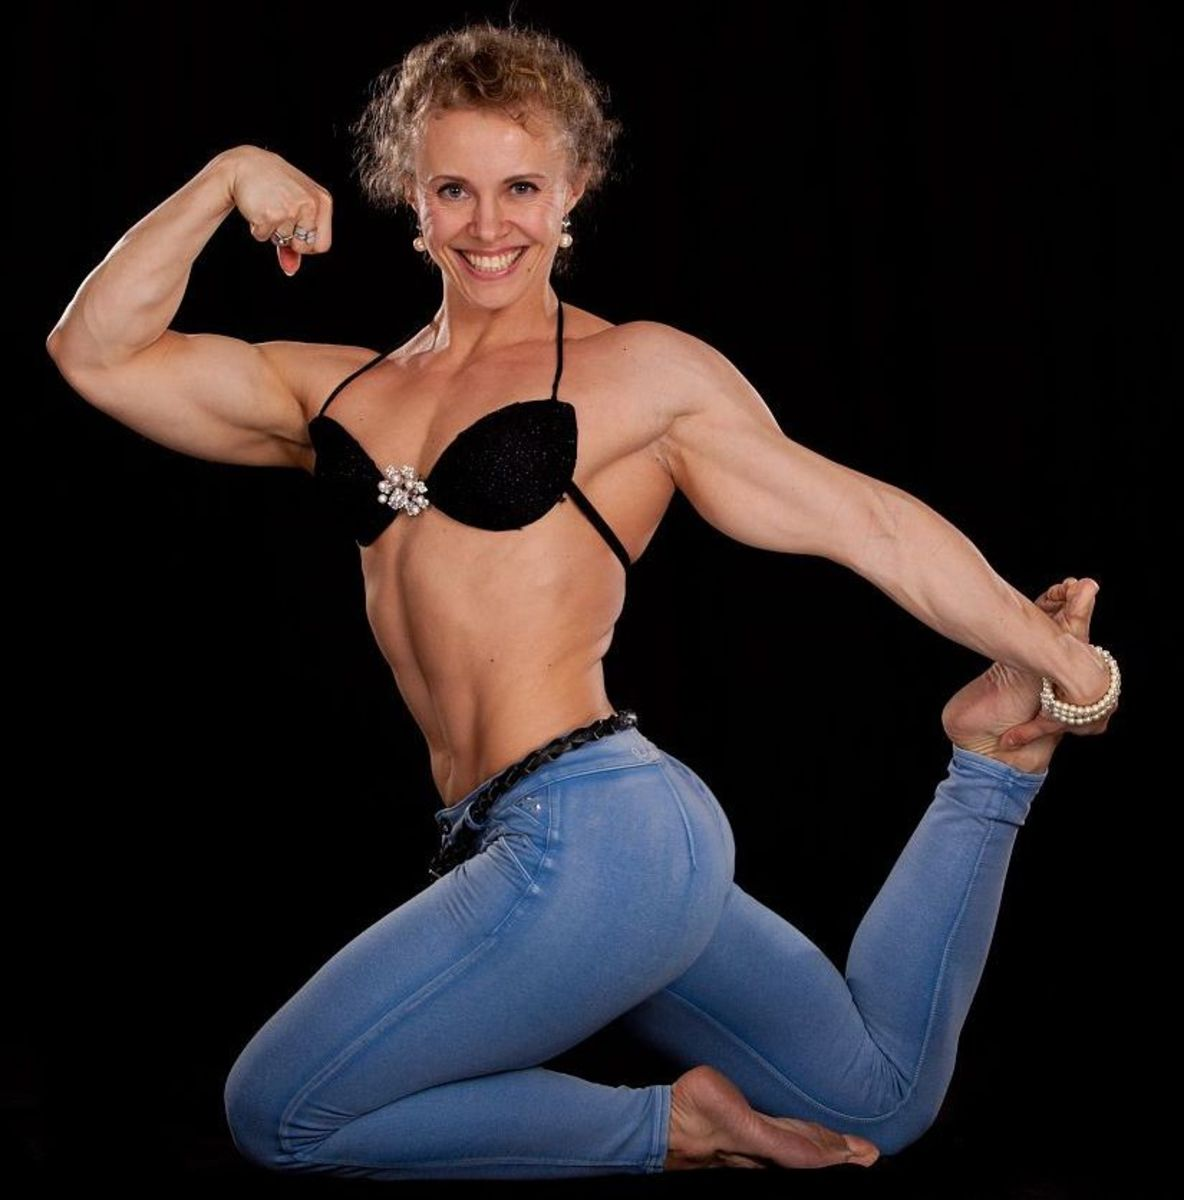 Russian female bodybuilder Elena Shportun